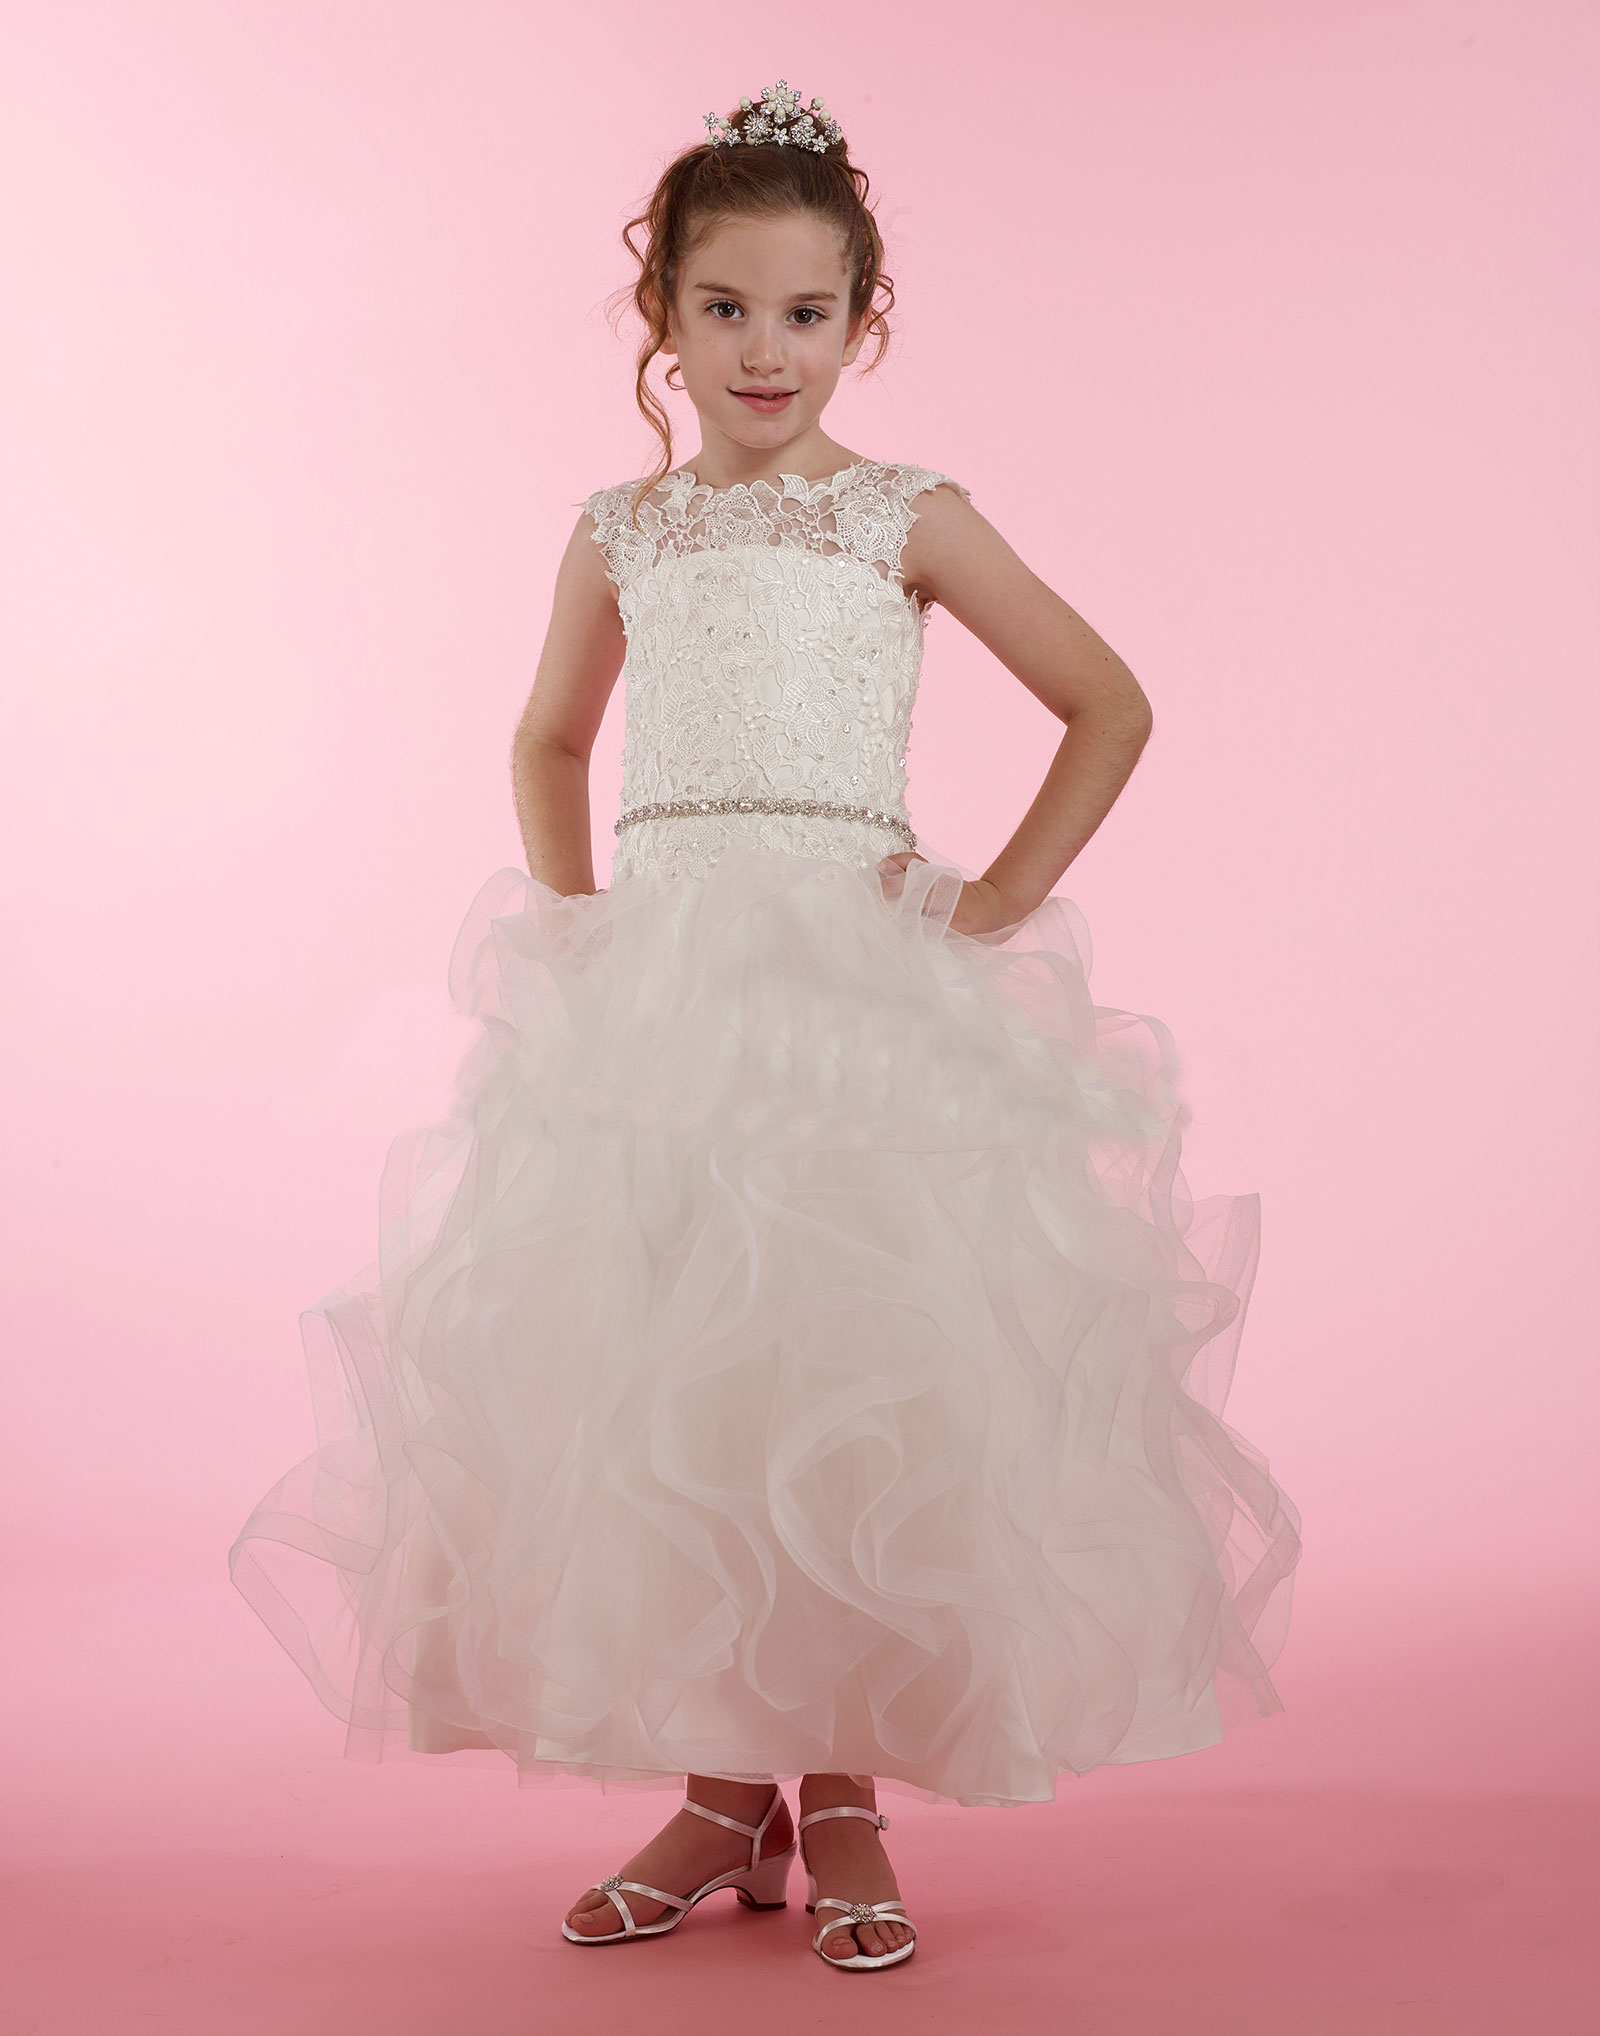 Md1990 Couture Designer Girls Dress Style 1990 Embroidered Lace